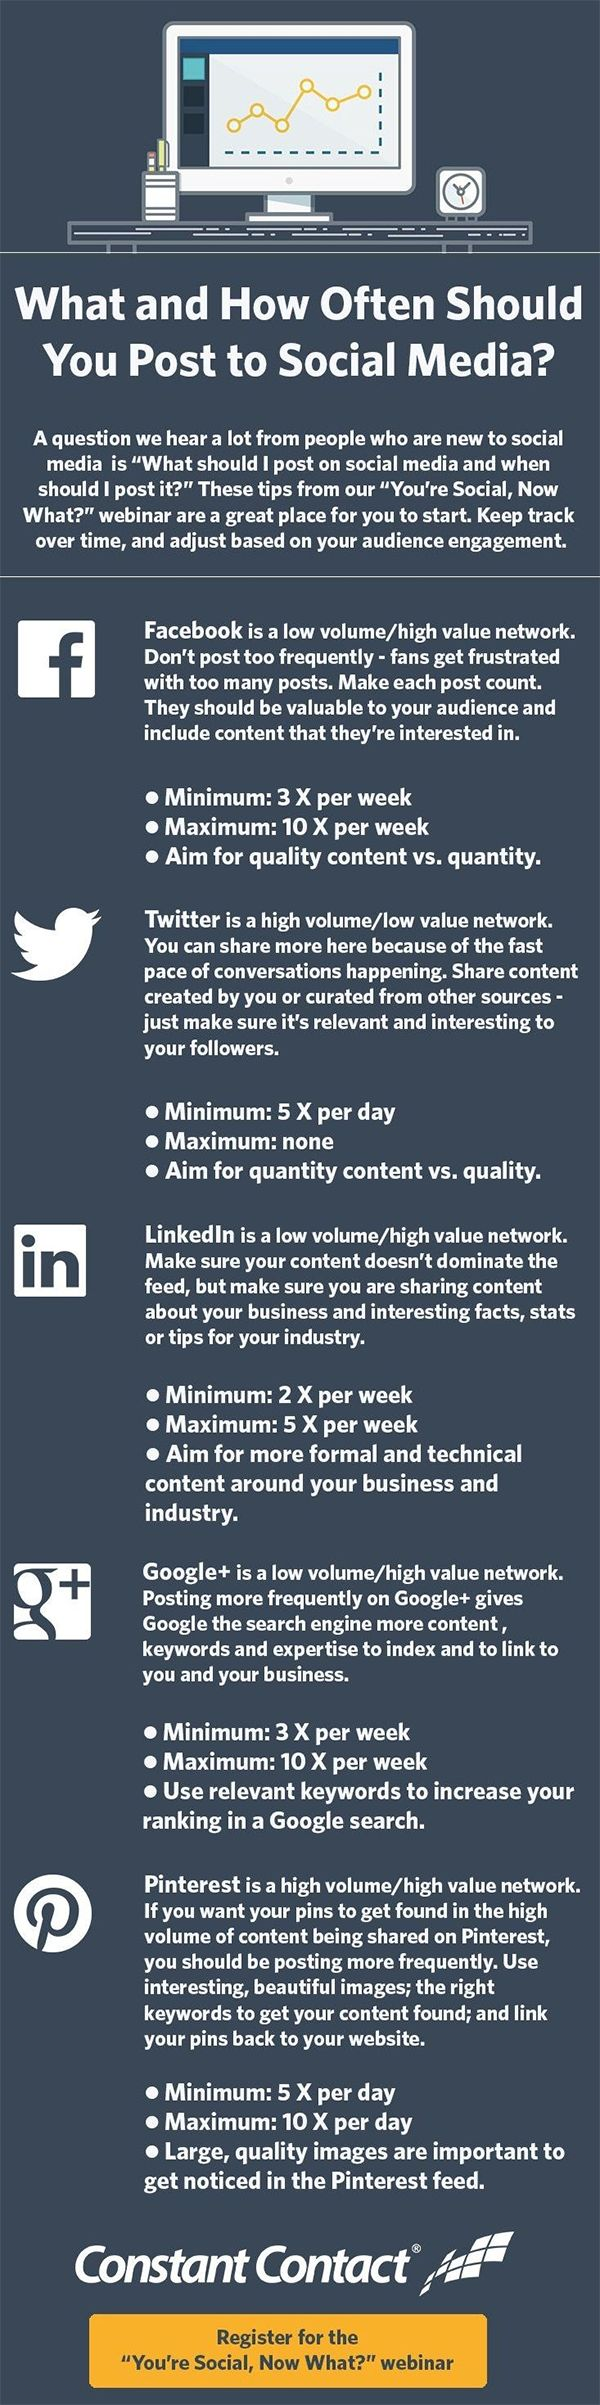 How Often You Should Post on Twitter and Other Social Media Networks